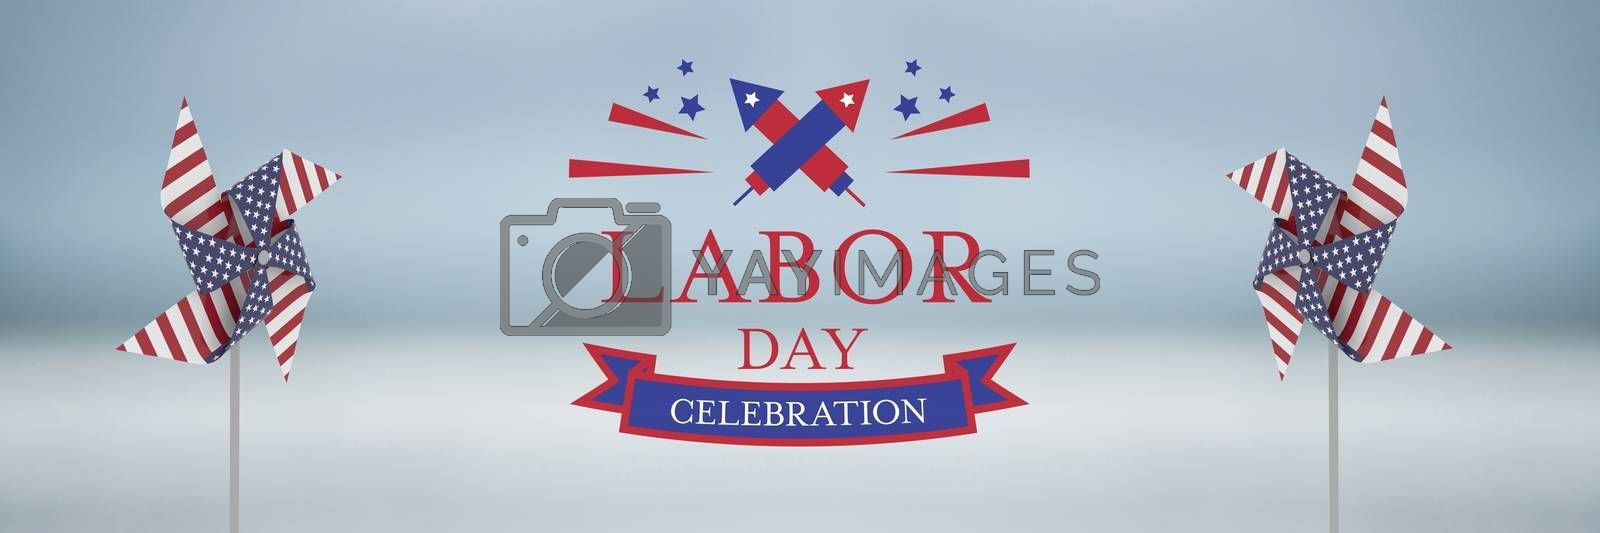 labor day celebration text and USA wind catchers in front of sea by Wavebreakmedia